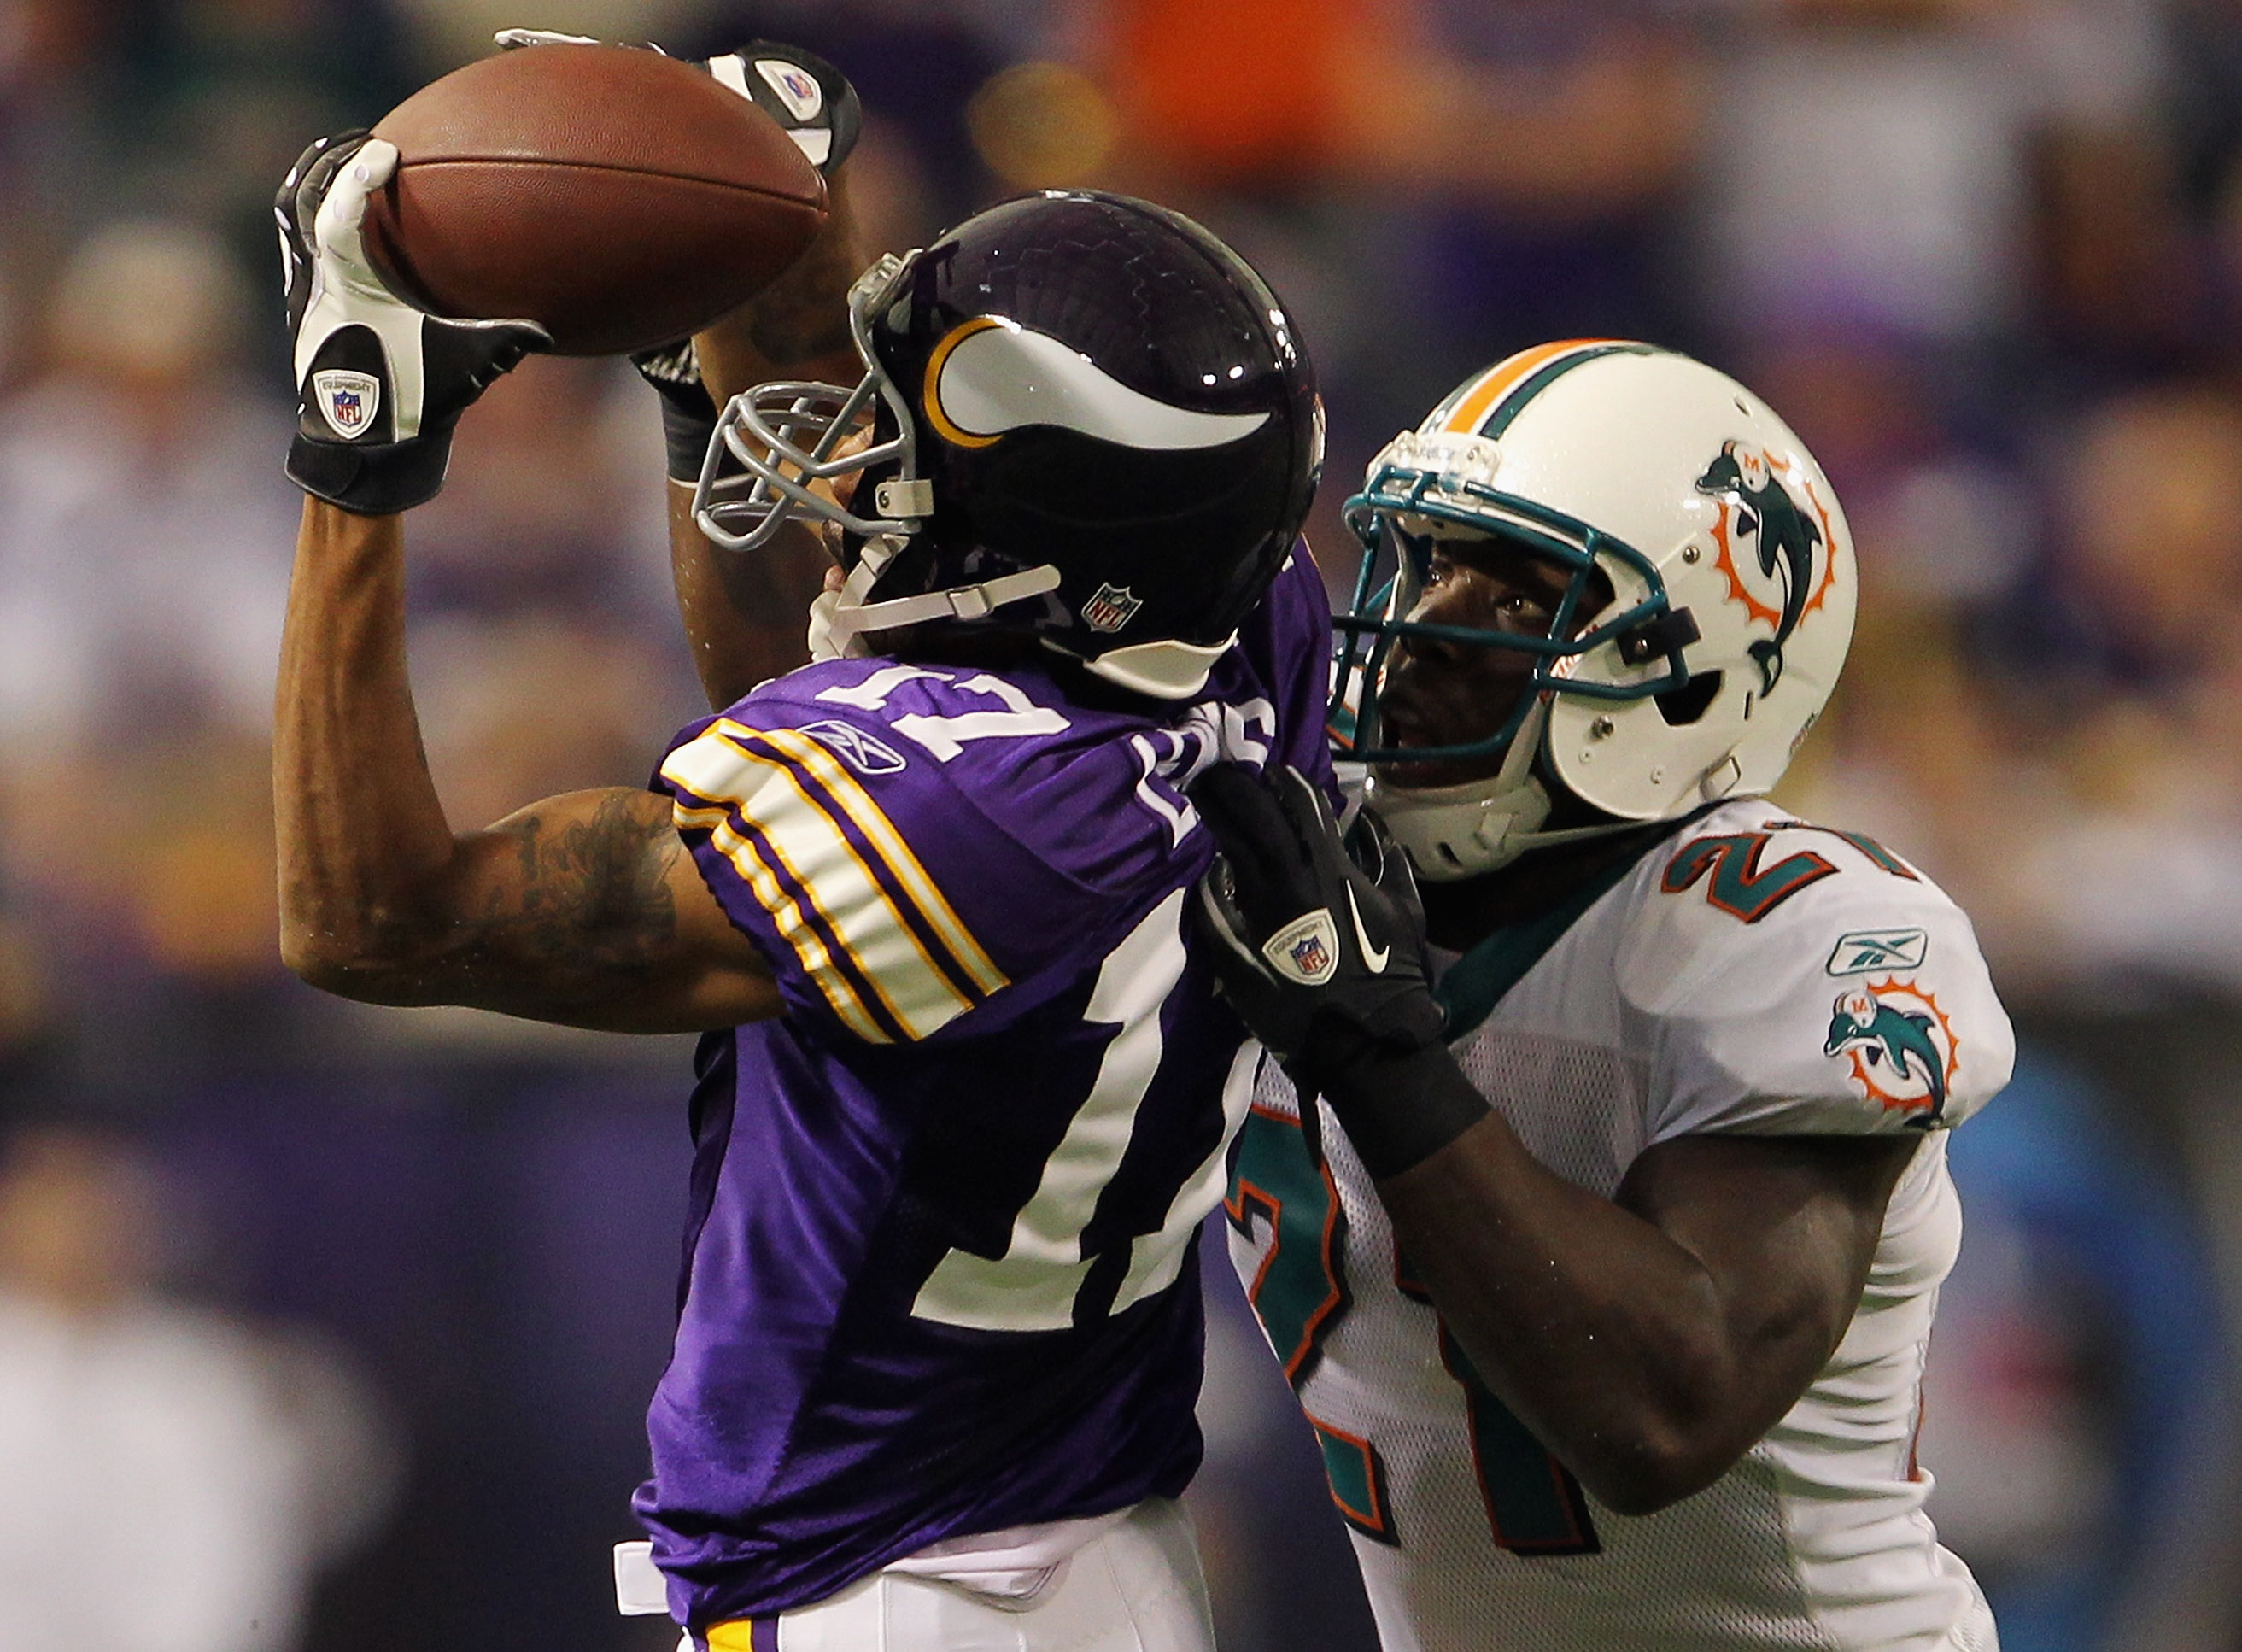 MINNEAPOLIS - SEPTEMBER 19:  Vontae Davis #21 of the Miami Dolphins breaks up a pass intended for Greg Lewis #17 of the Minnesota Vikings during the game on September 19, 2010 at Hubert H. Humphrey Metrodome in Minneapolis, Minnesota.  (Photo by Jamie Squ